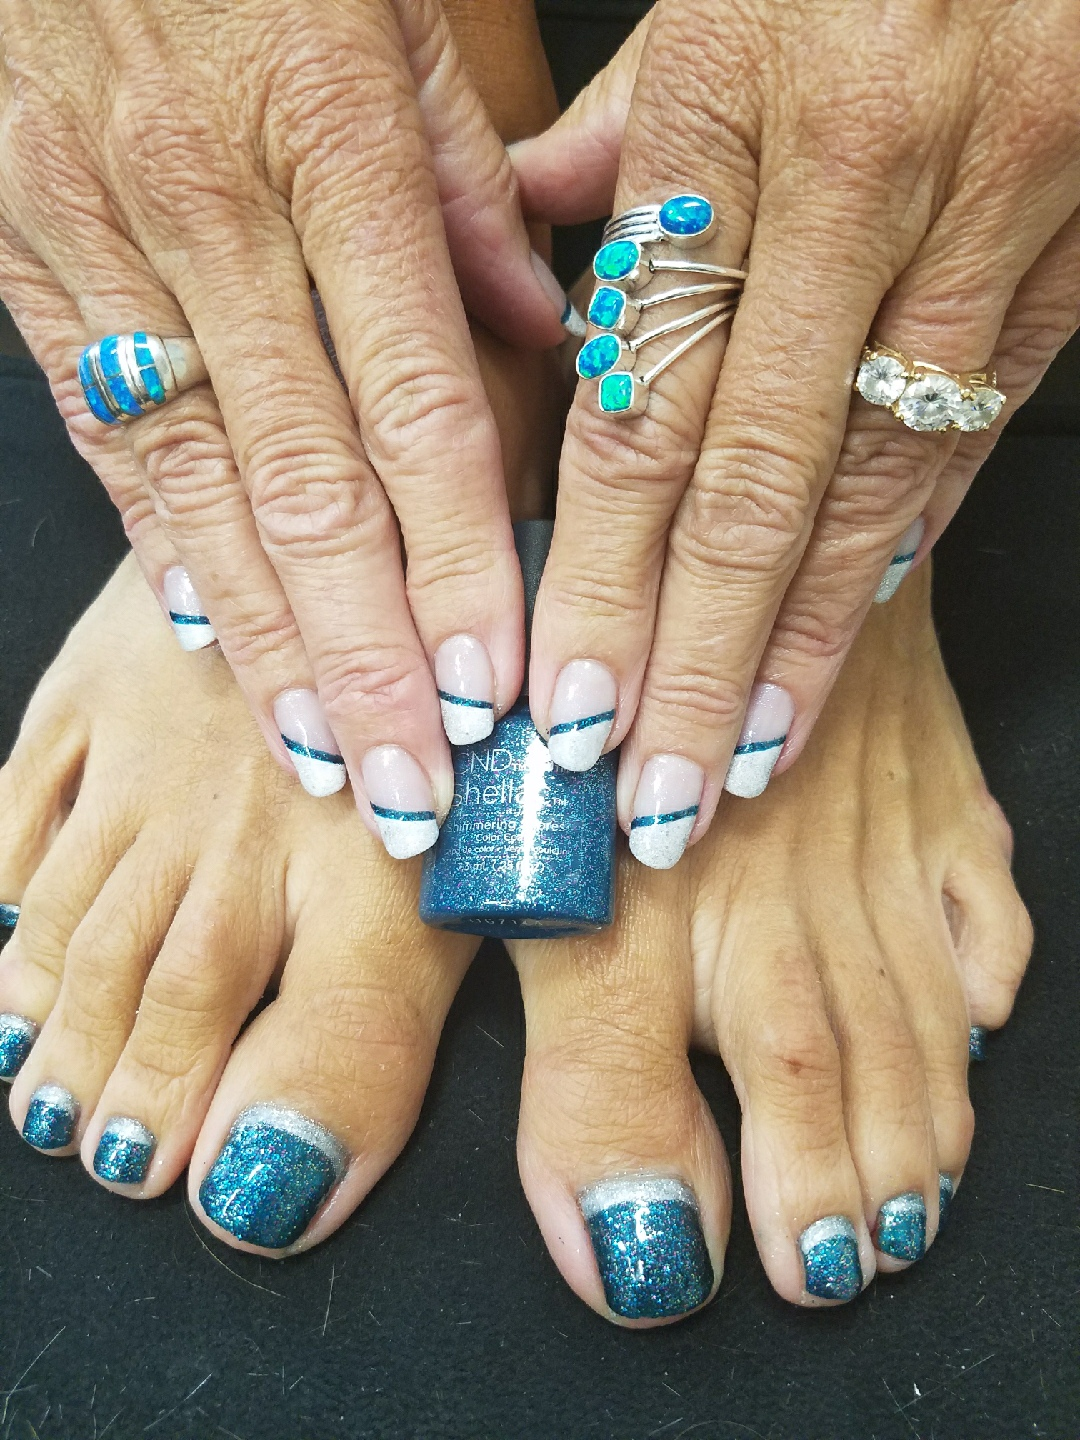 Edge Salon - Nails